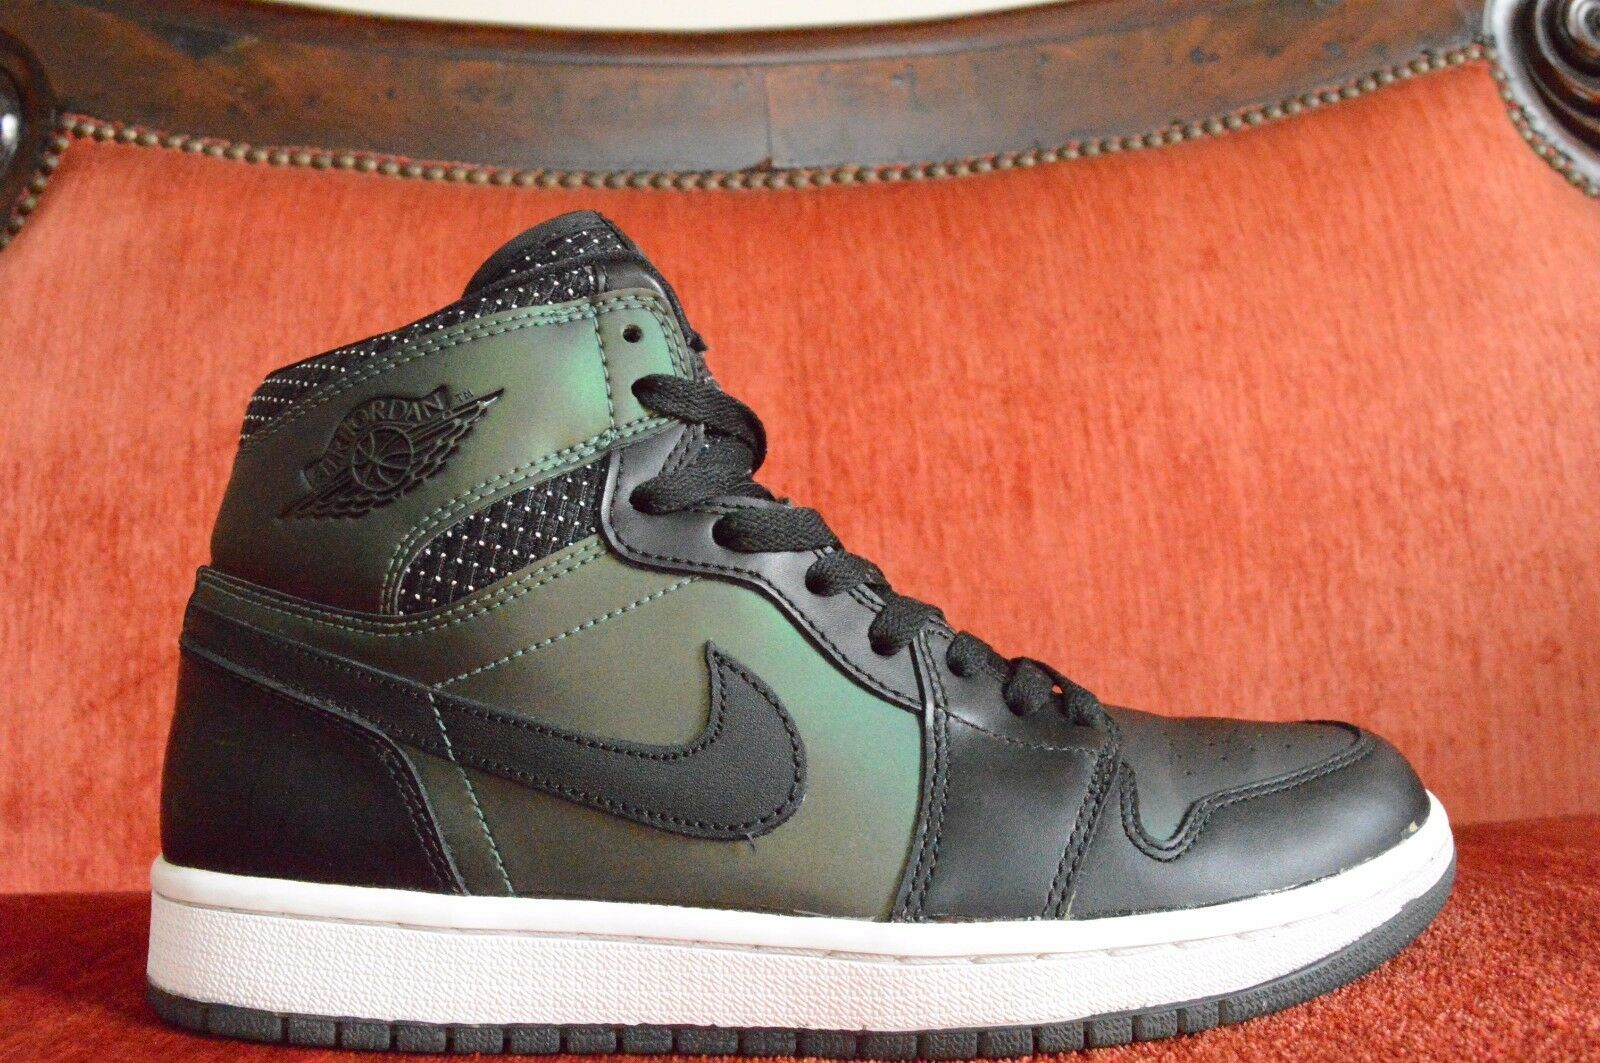 VNDS Nike Air Jordan 1 Retro High SB Green Craig Stecyk 653532 001 Size 8